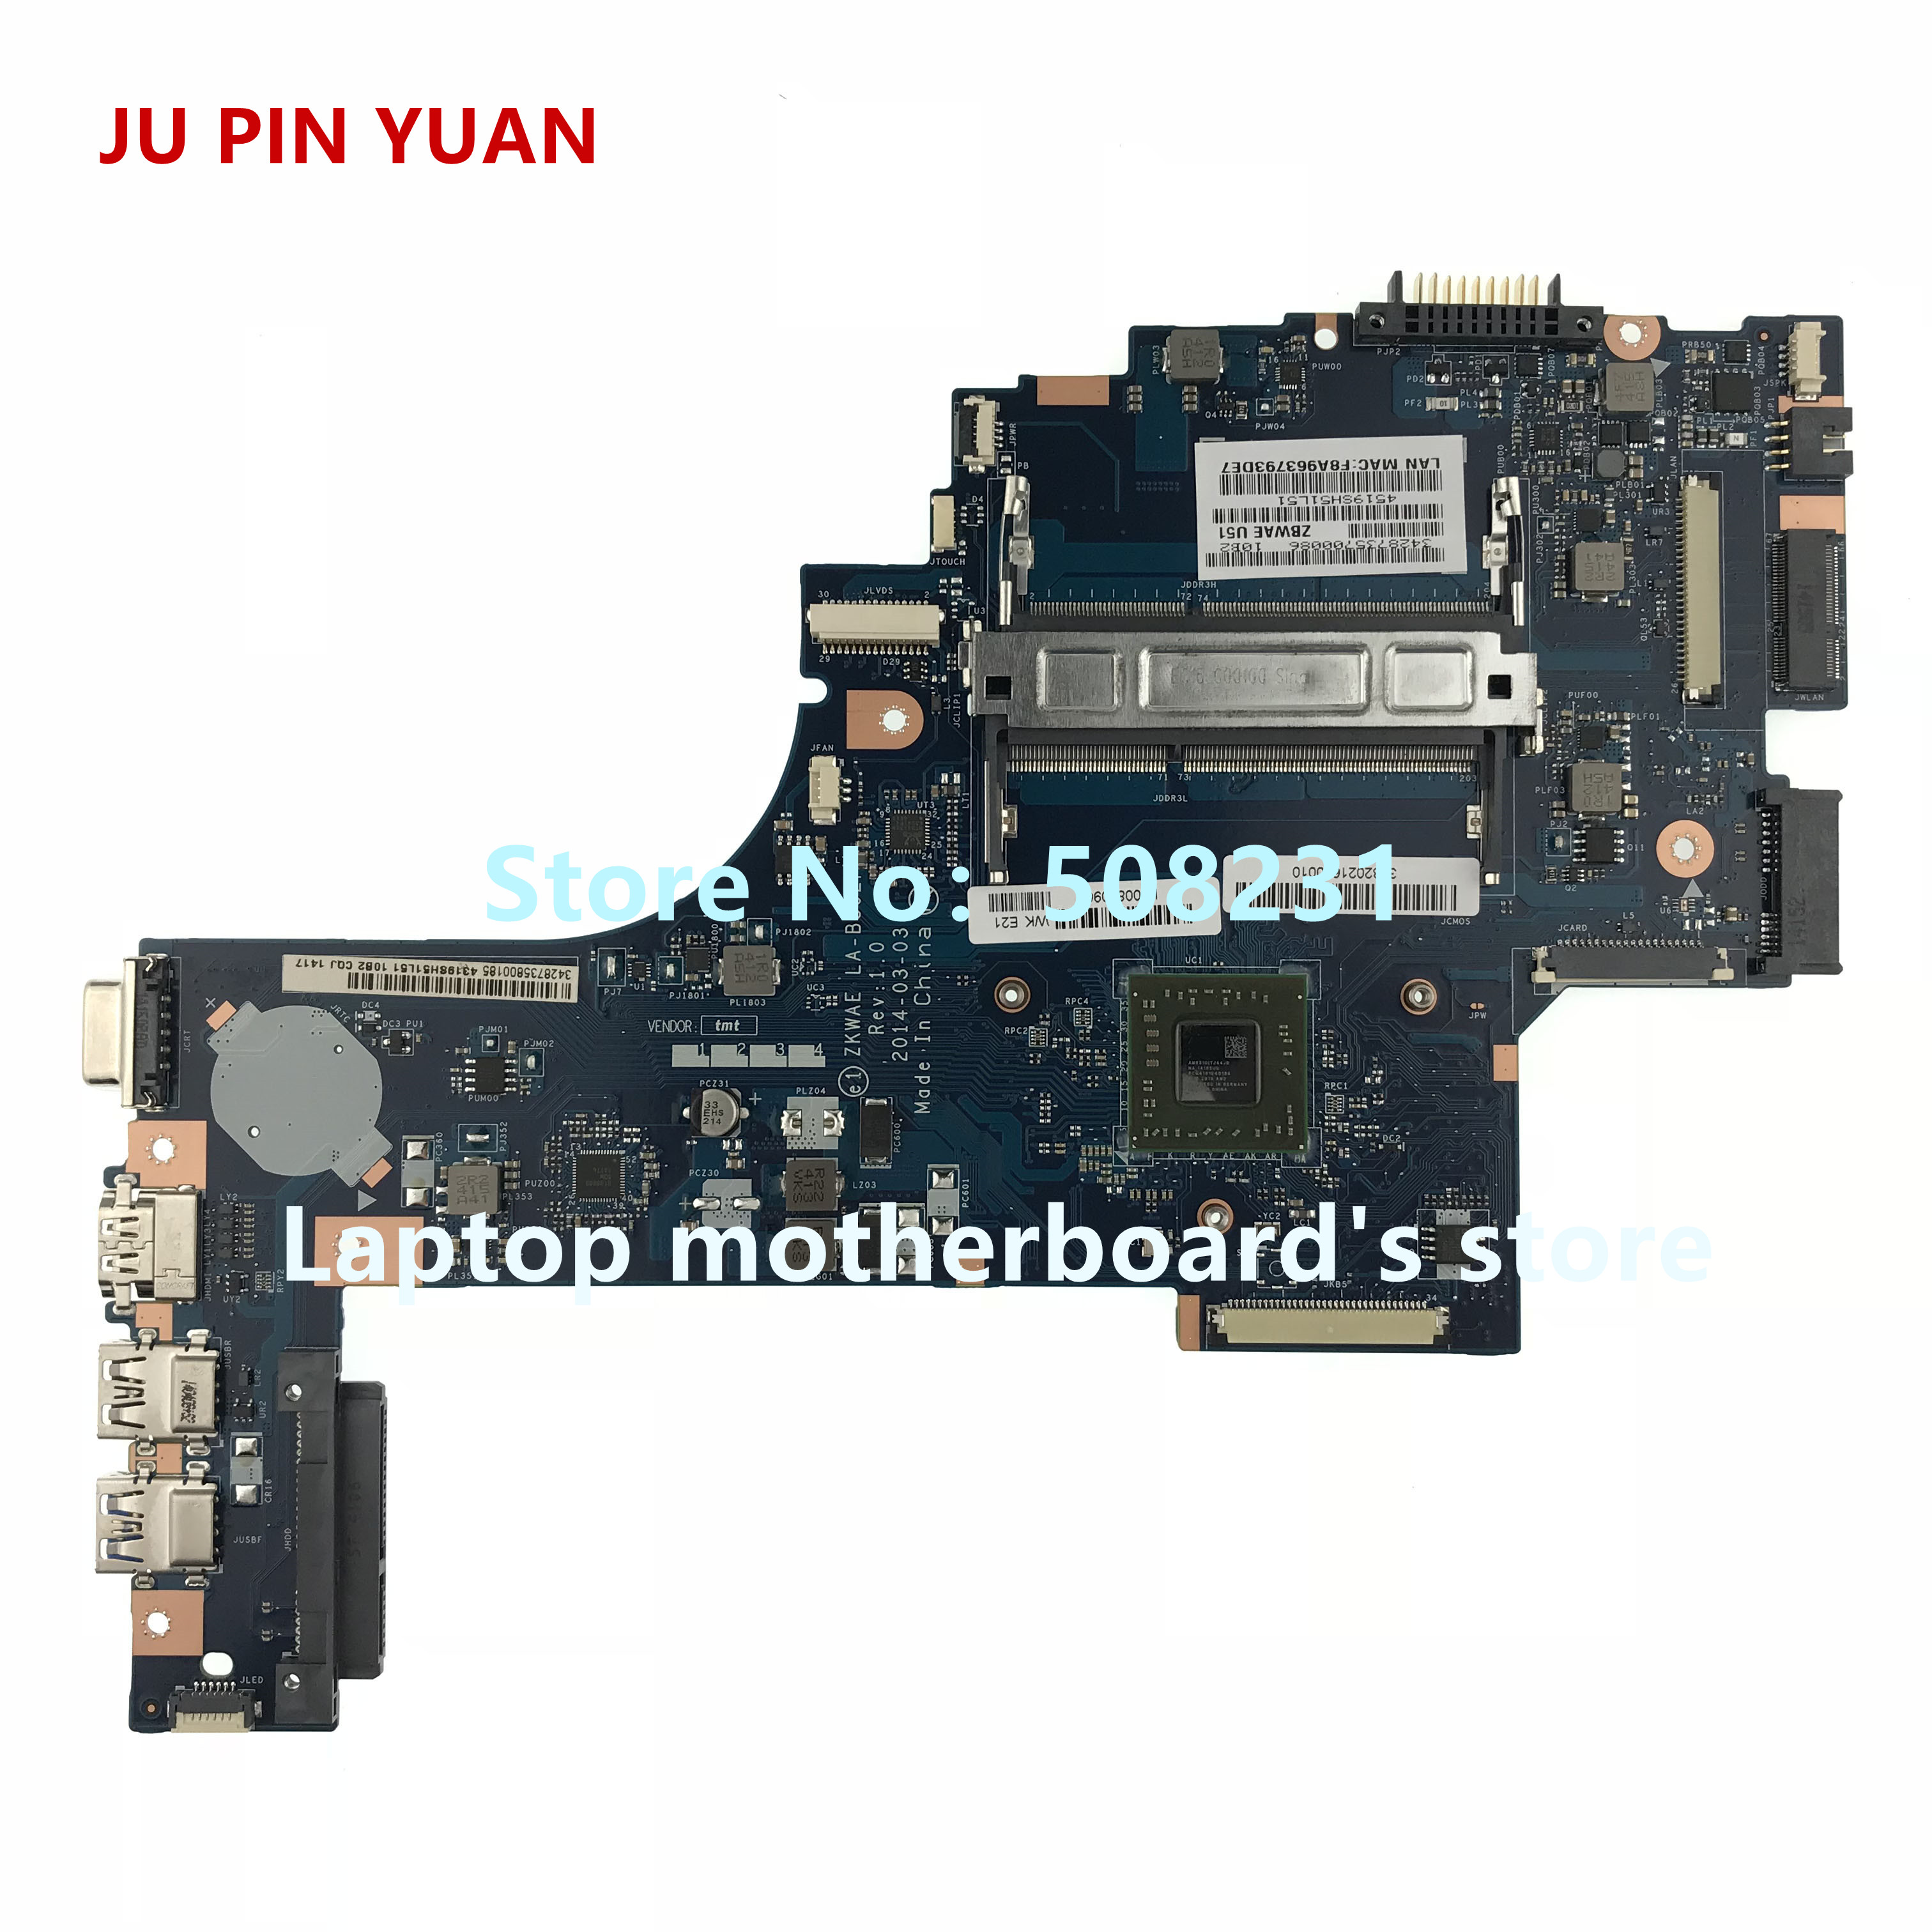 JU PIN YUAN K000890960 LA-B302P <font><b>for</b></font> <font><b>Toshiba</b></font> <font><b>Satellite</b></font> <font><b>C55D</b></font> <font><b>C55D</b></font>-B5219 laptop <font><b>motherboard</b></font> with A6-6310 1.8GHZ fully Tested image